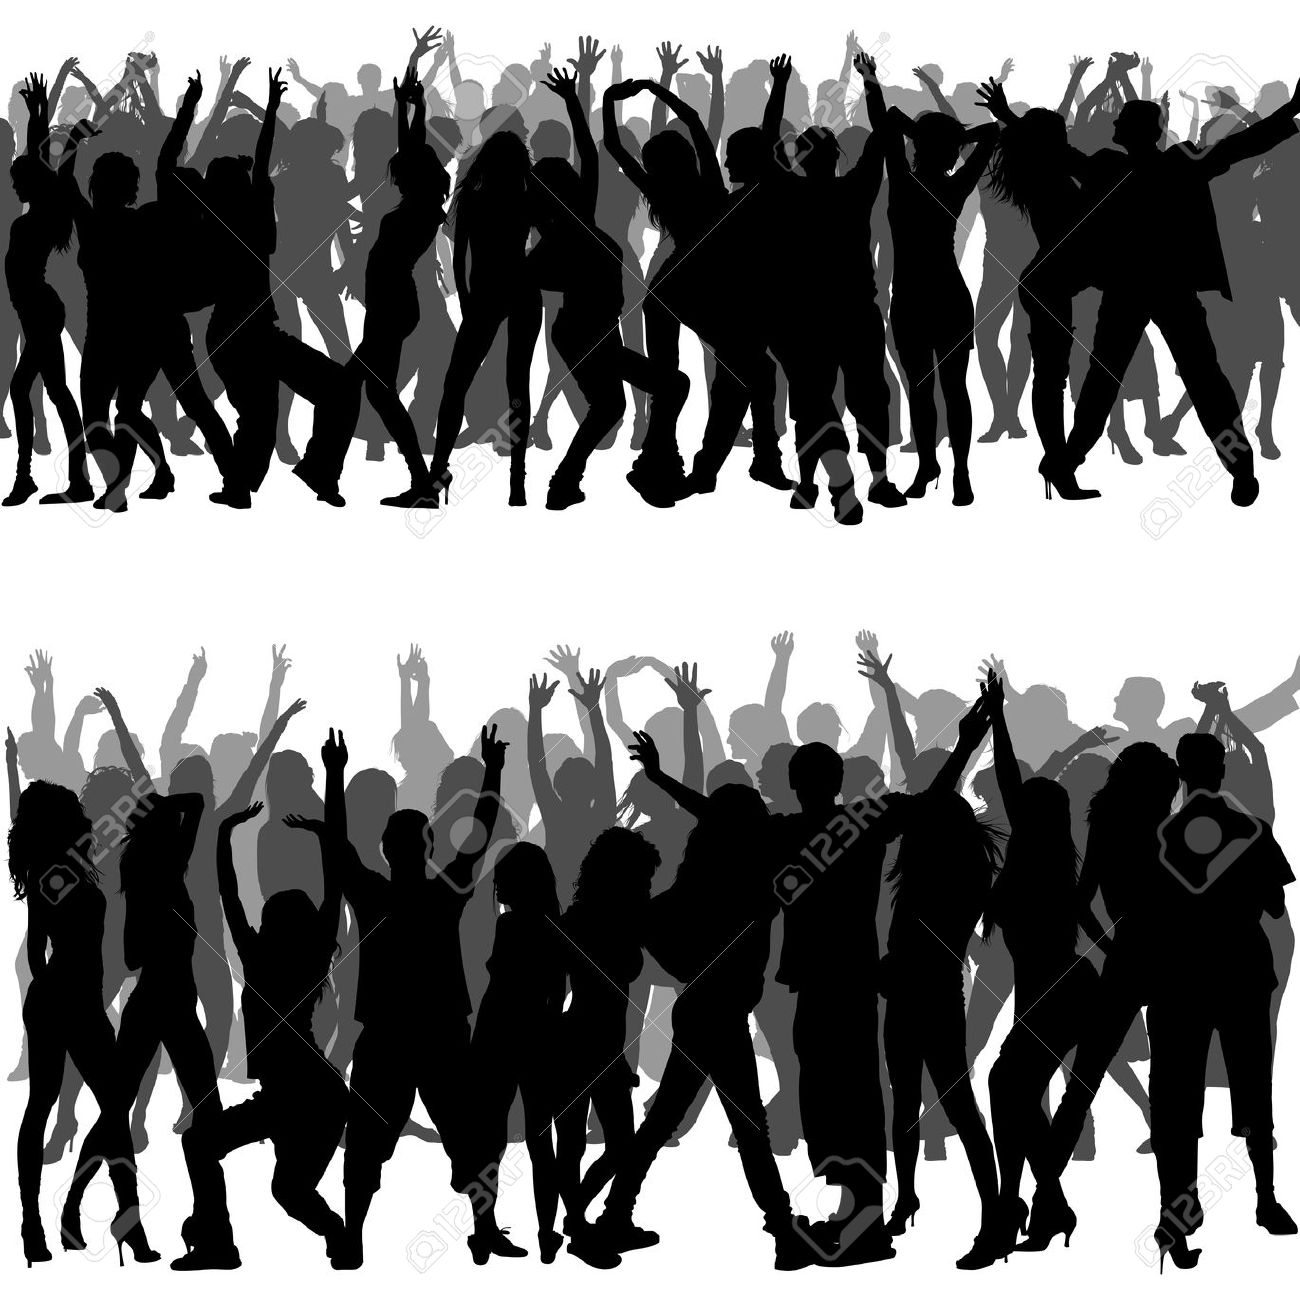 Crowd Clipart Silhouette.